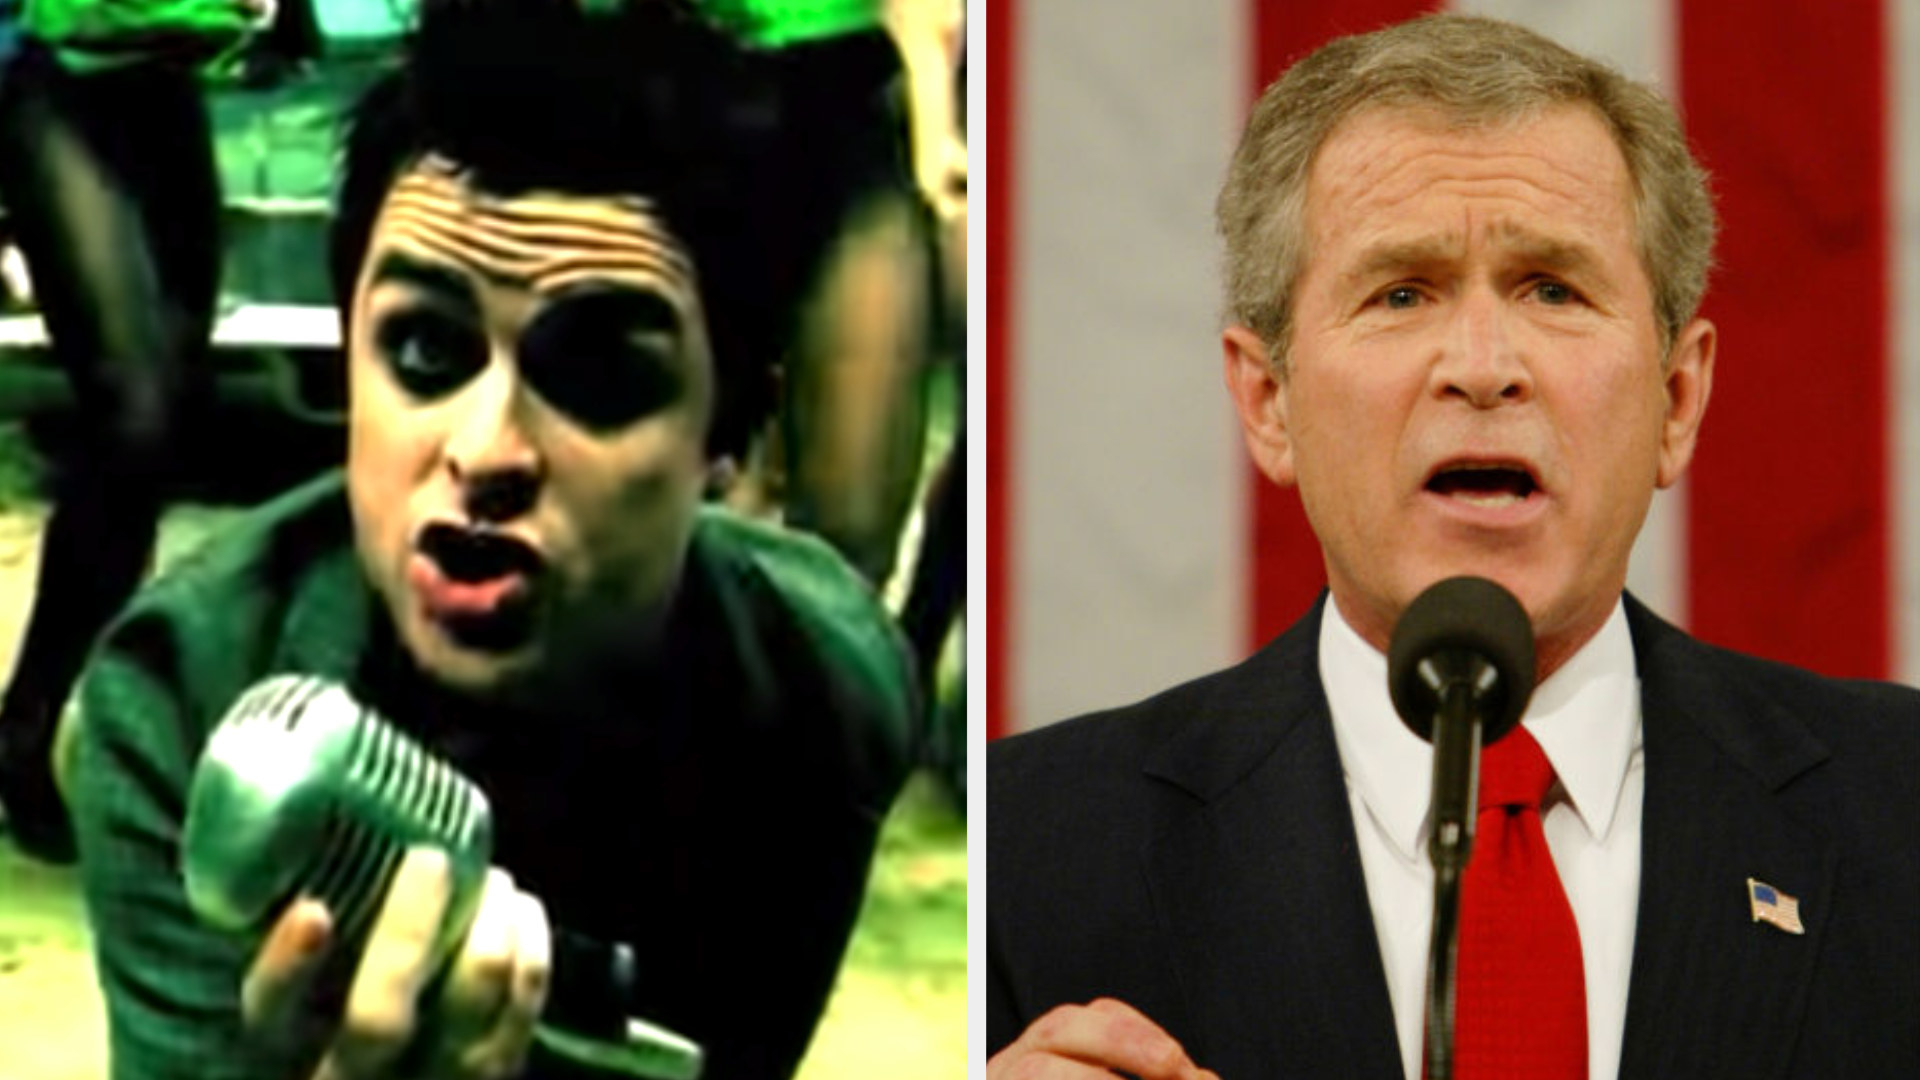 """Billie Joe Armstrong in Green Day's """"Holiday"""" music video; George W. Bush making his State of the Union address in 2004"""